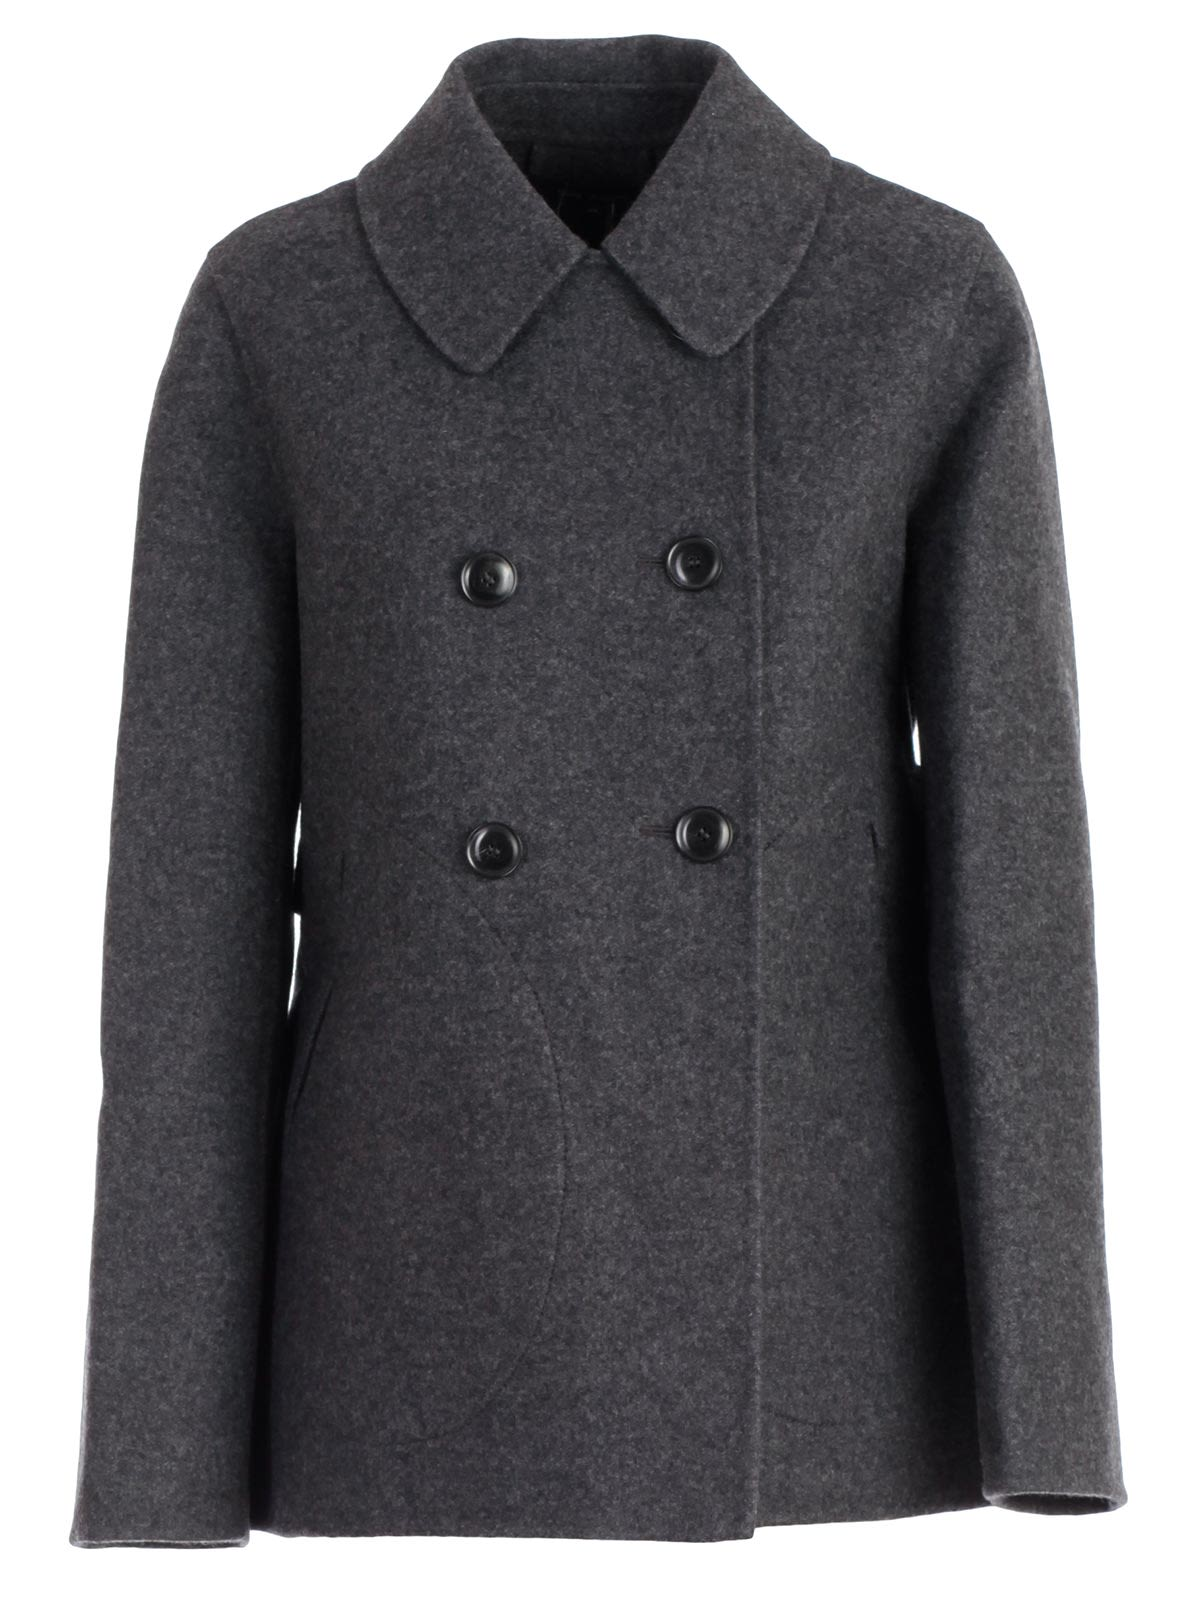 SOFIE D'HOORE Sofie D'Hoore Double-Breasted Pea Coat in Charcoal